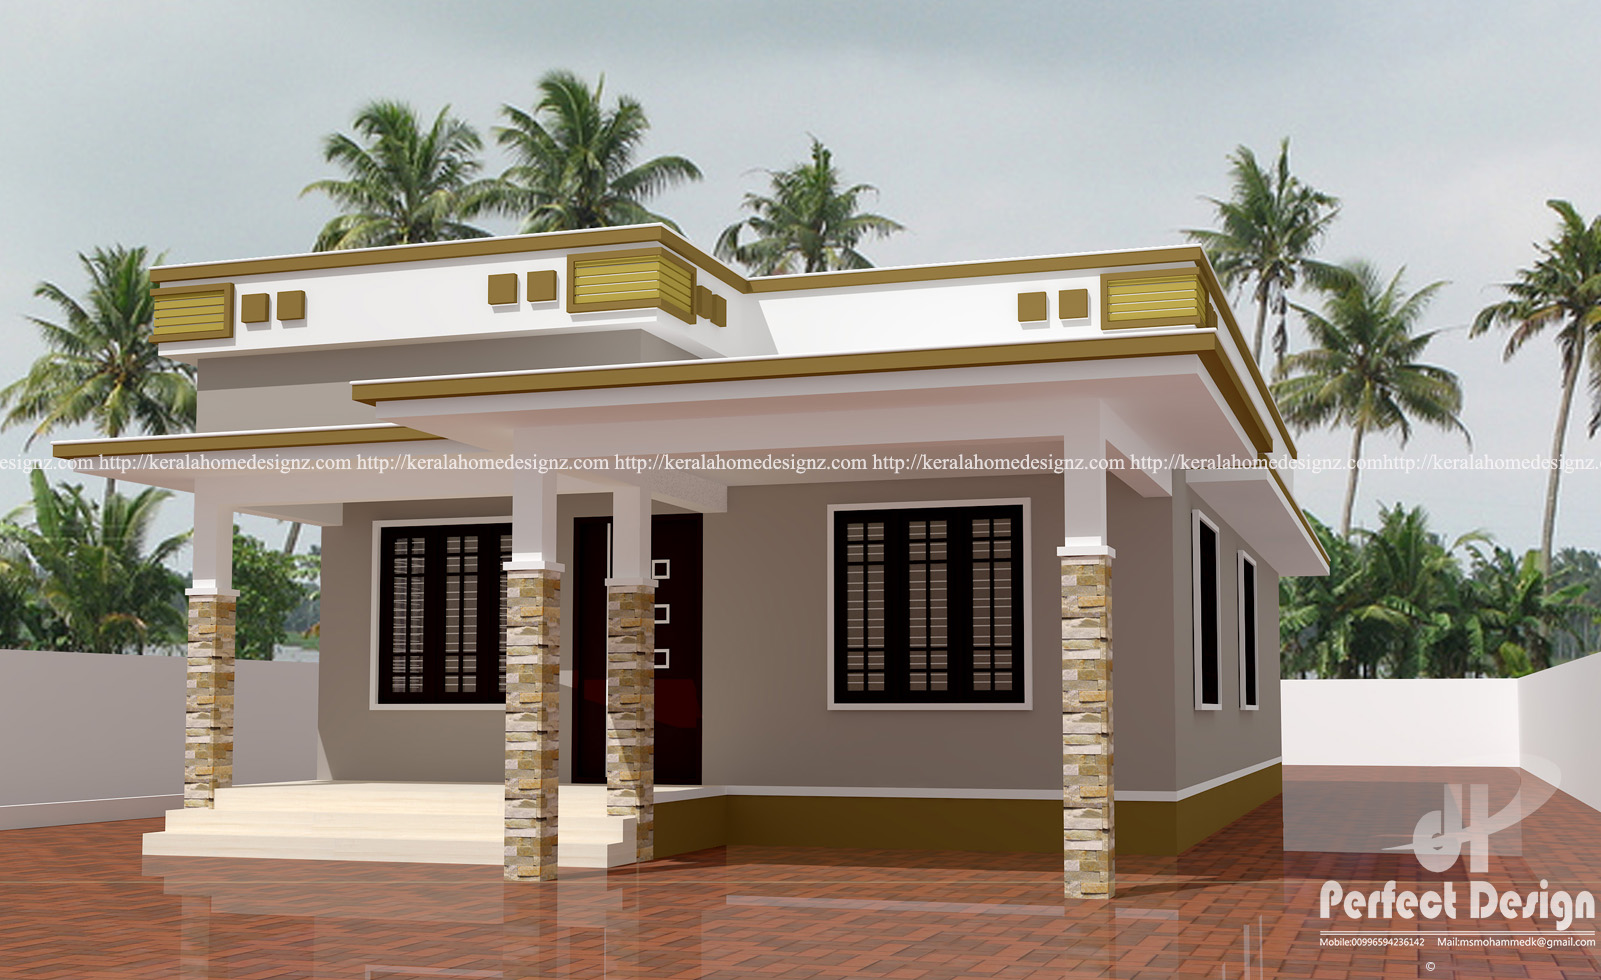 Simple contemporary home design – Kerala Home Design on simple cloud design, country kitchen designs, simple wood homes, simple villa design, simple modern homes, simple modern exterior design, simple small homes, long house designs, simple restaurant interior design, simple interior design ideas, simple closet design, small bathroom designs, house plan your own designs,